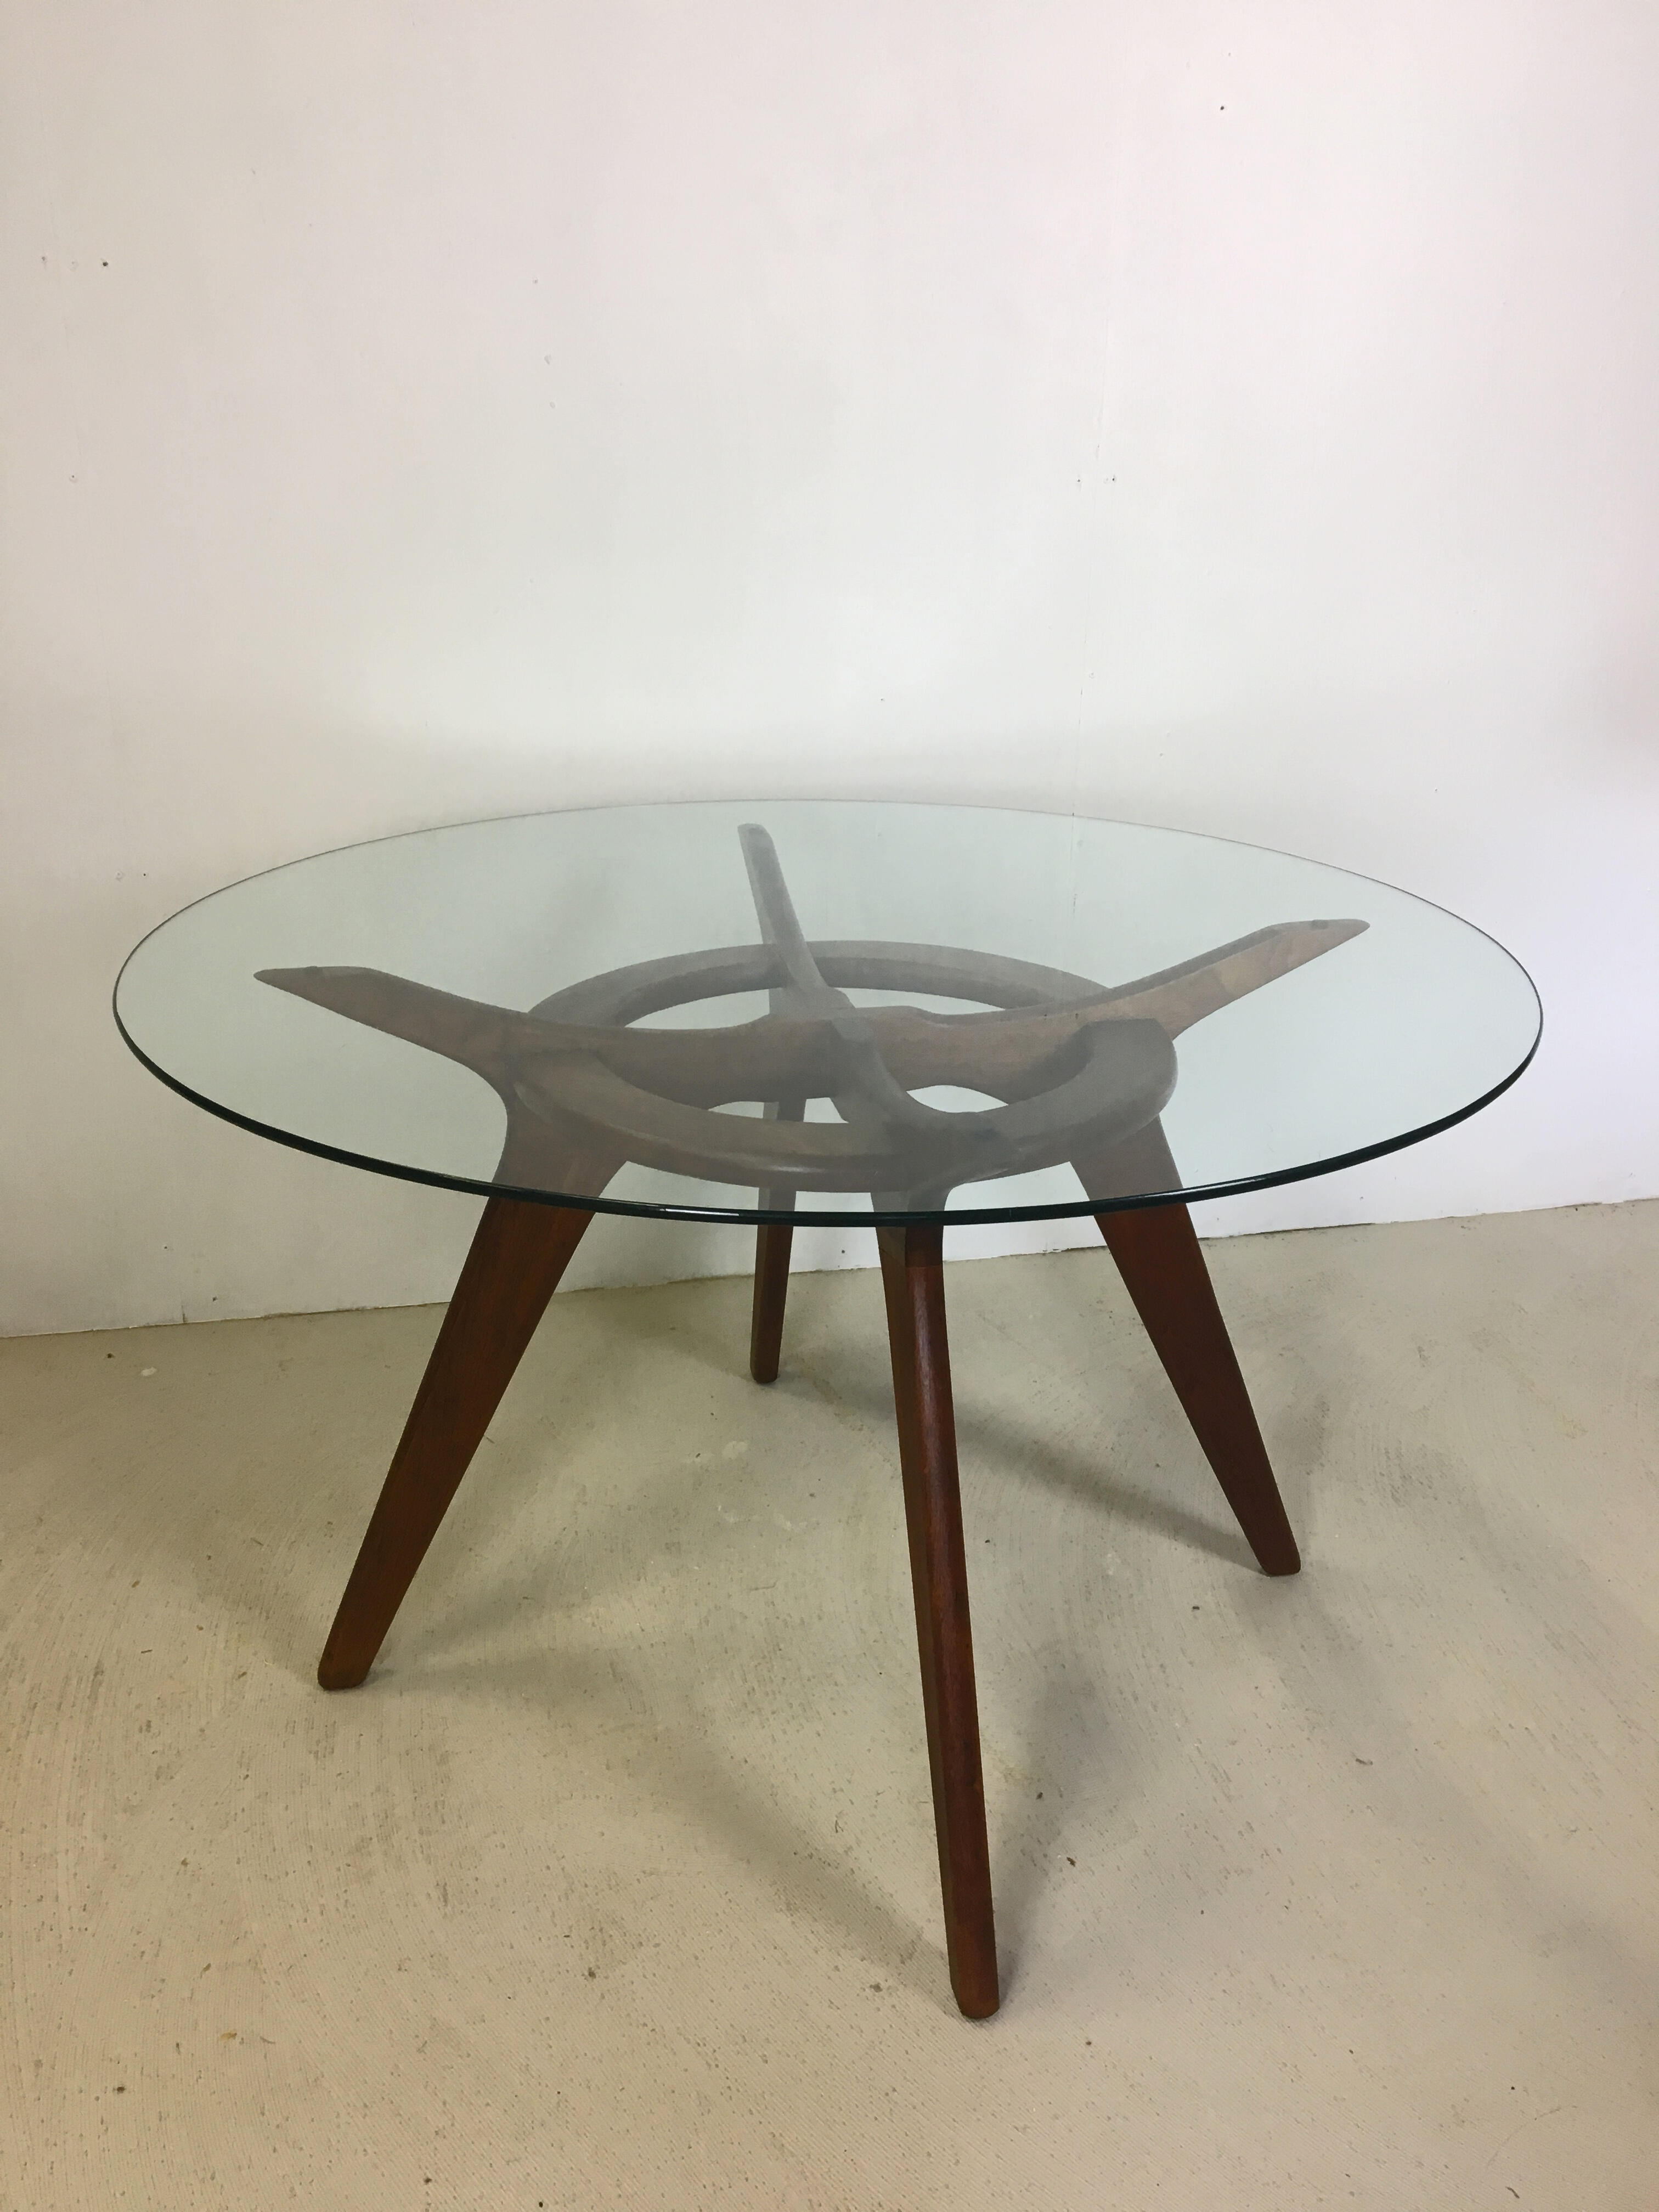 30% OFF - Adrian Pearsall Compass Dining Table